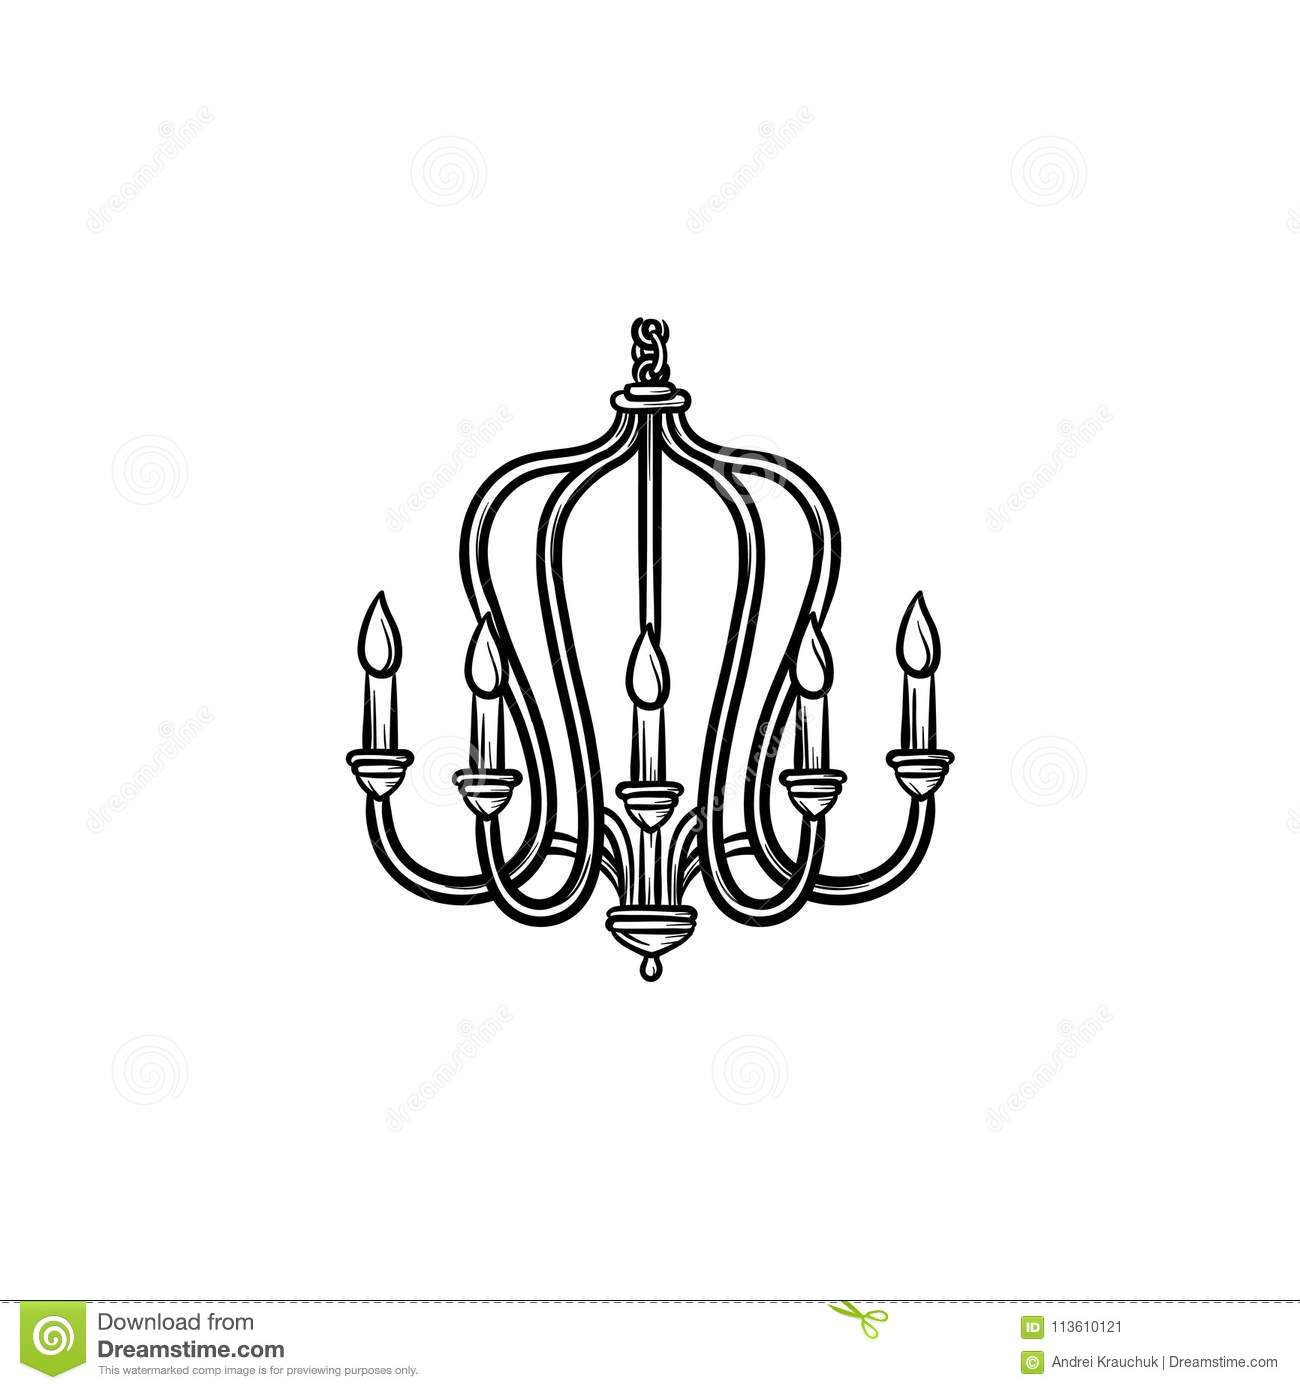 chandelier modern art canvas wall x amazon prints artwork decor print dp com posters home